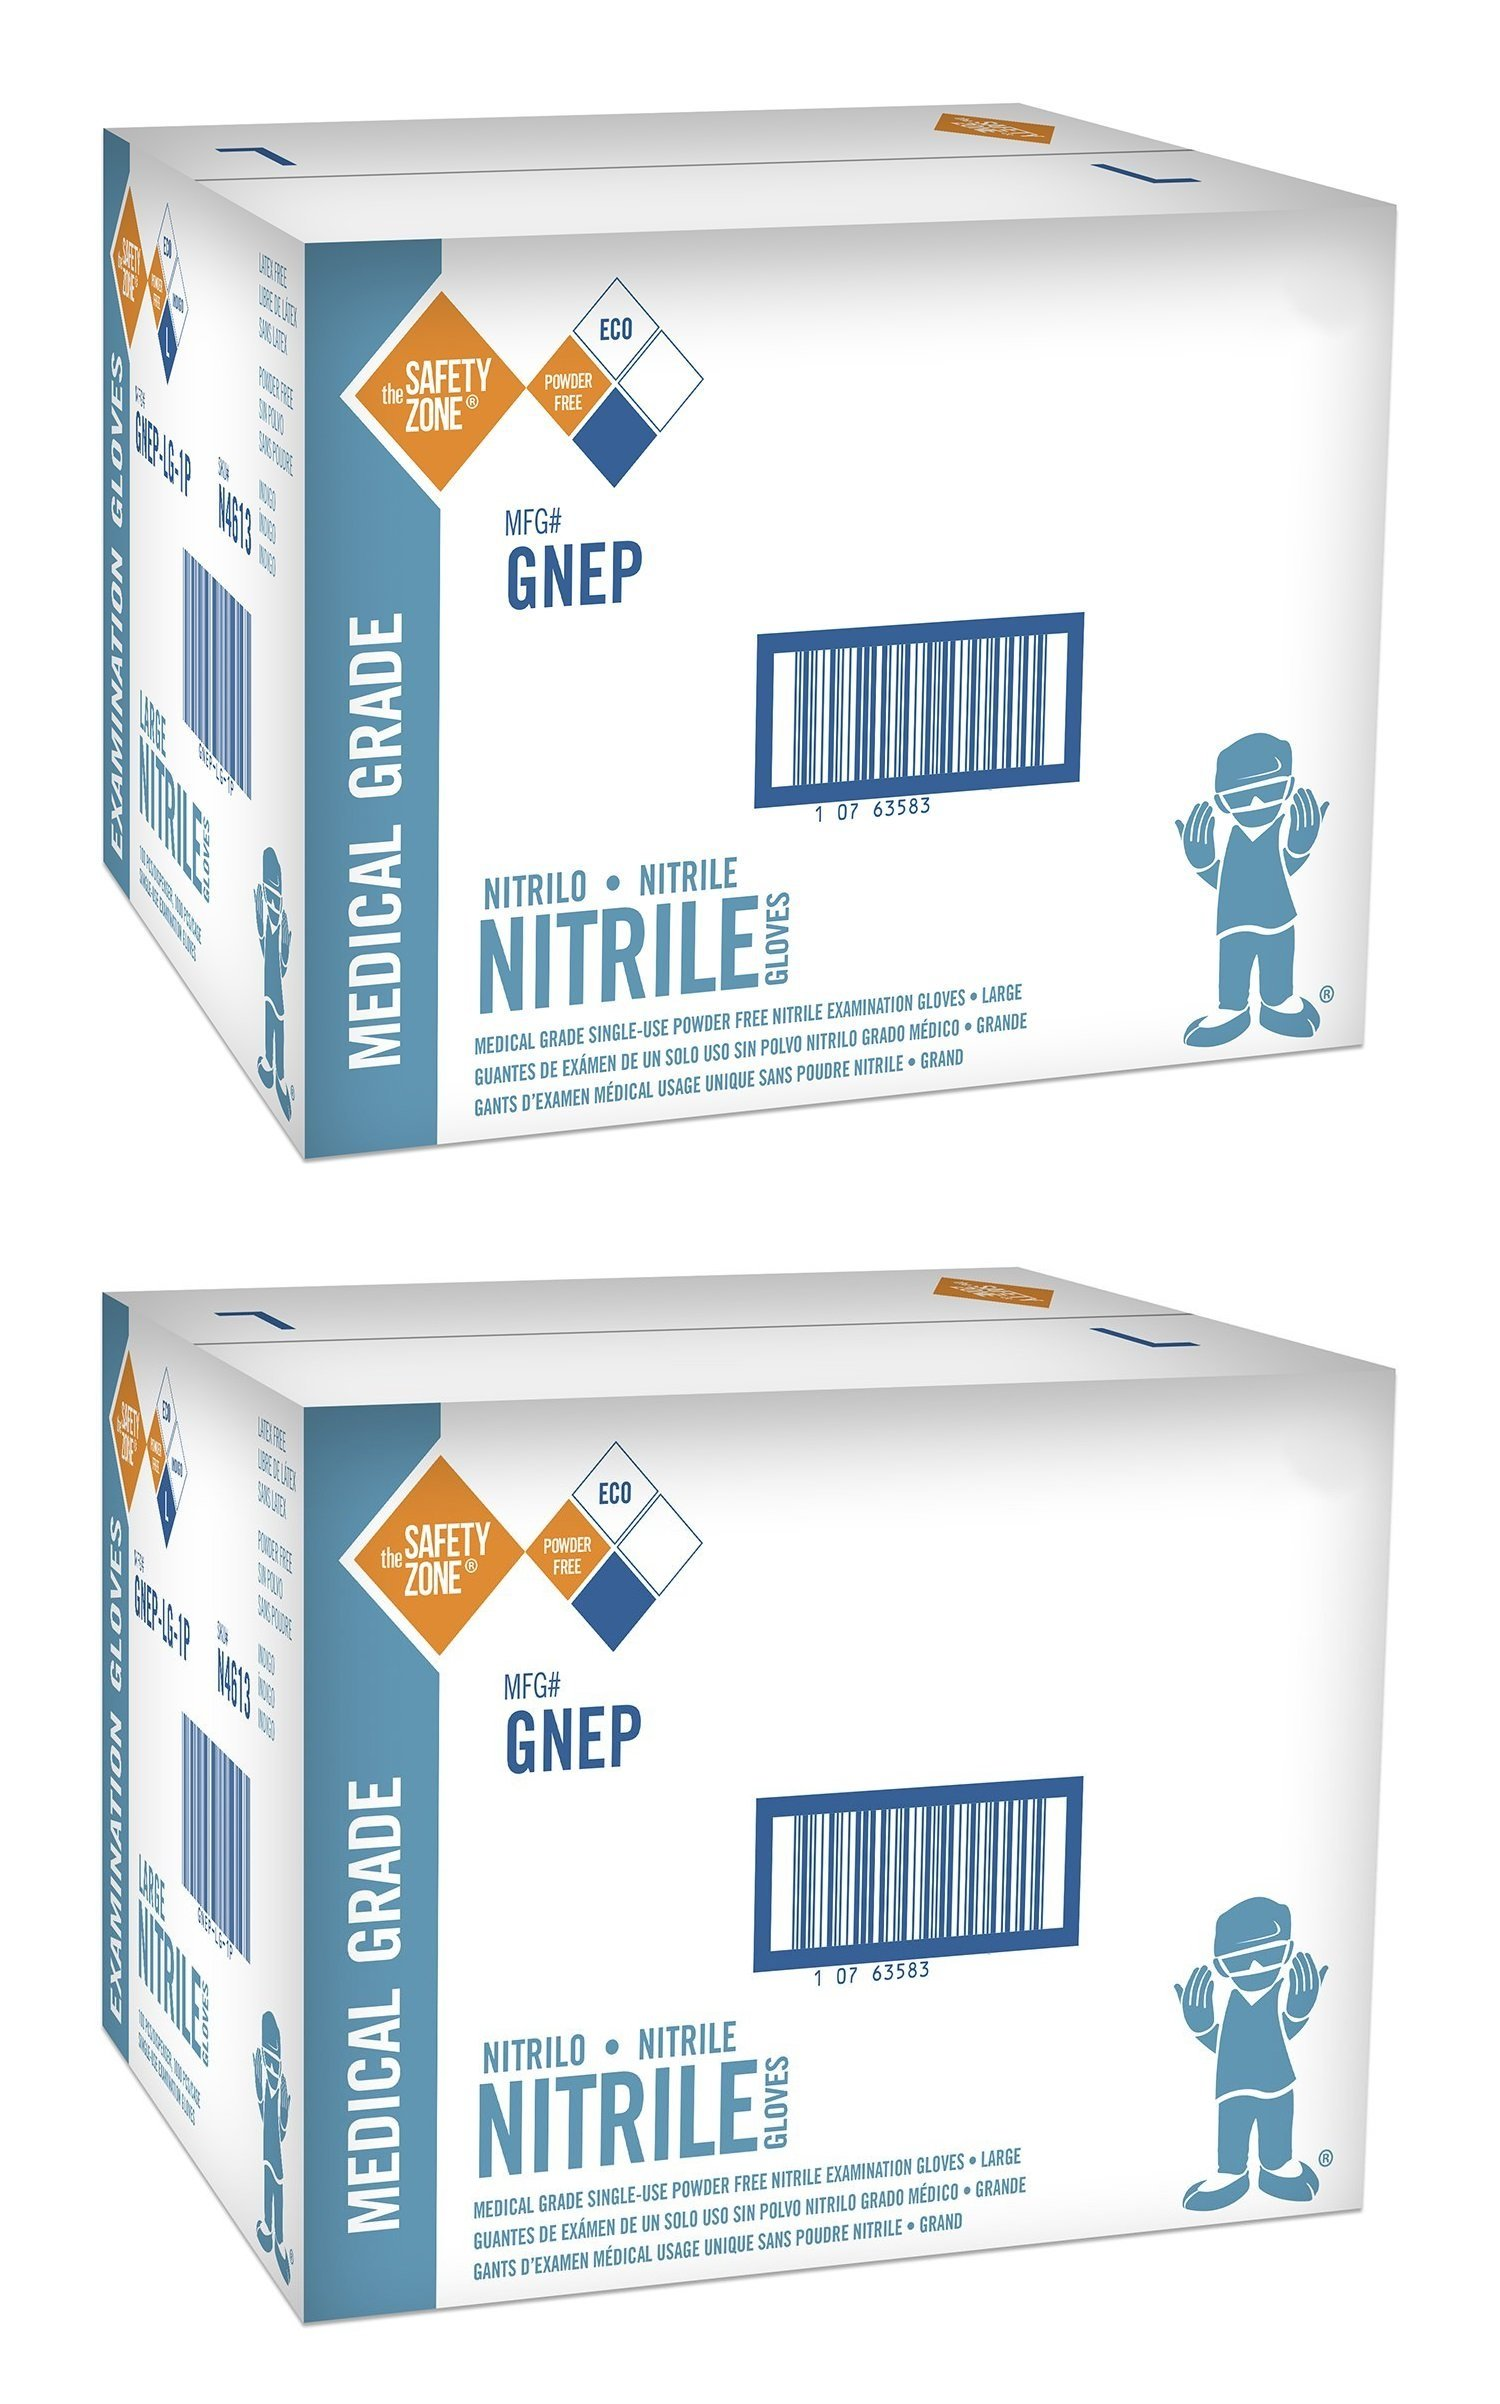 Nitrile Exam Gloves - Medical Grade, Powder Free tbedkl, Latex Rubber Free, Disposable, Non Sterile, Food Safe, Indigo (purple), Medium, 2000 Gloves